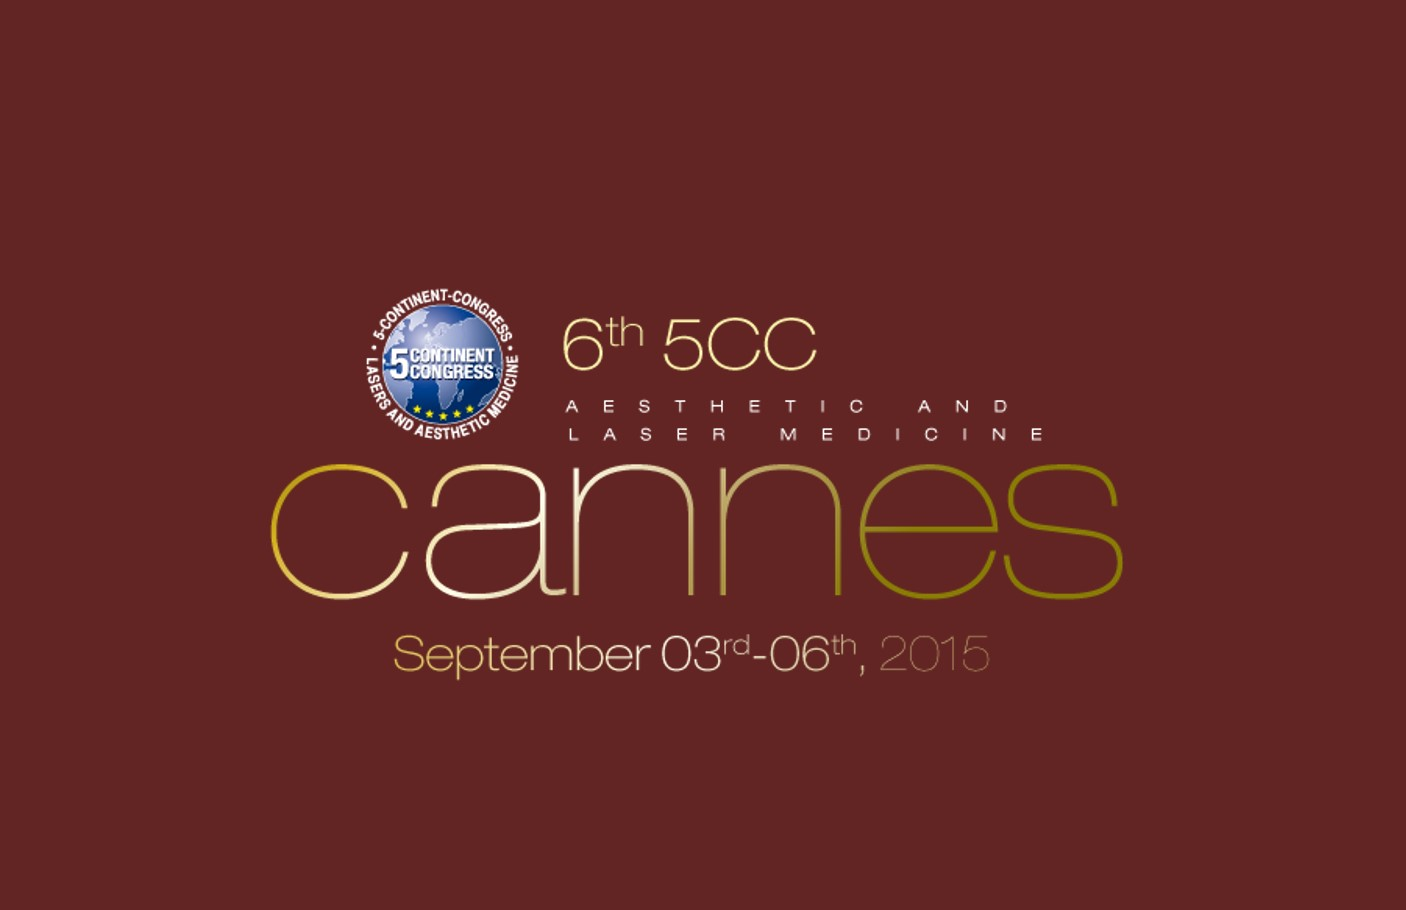 Cannes  - 6th 5CC - Aesthetic and Laser Medicine - September 03rd - 06th  2015